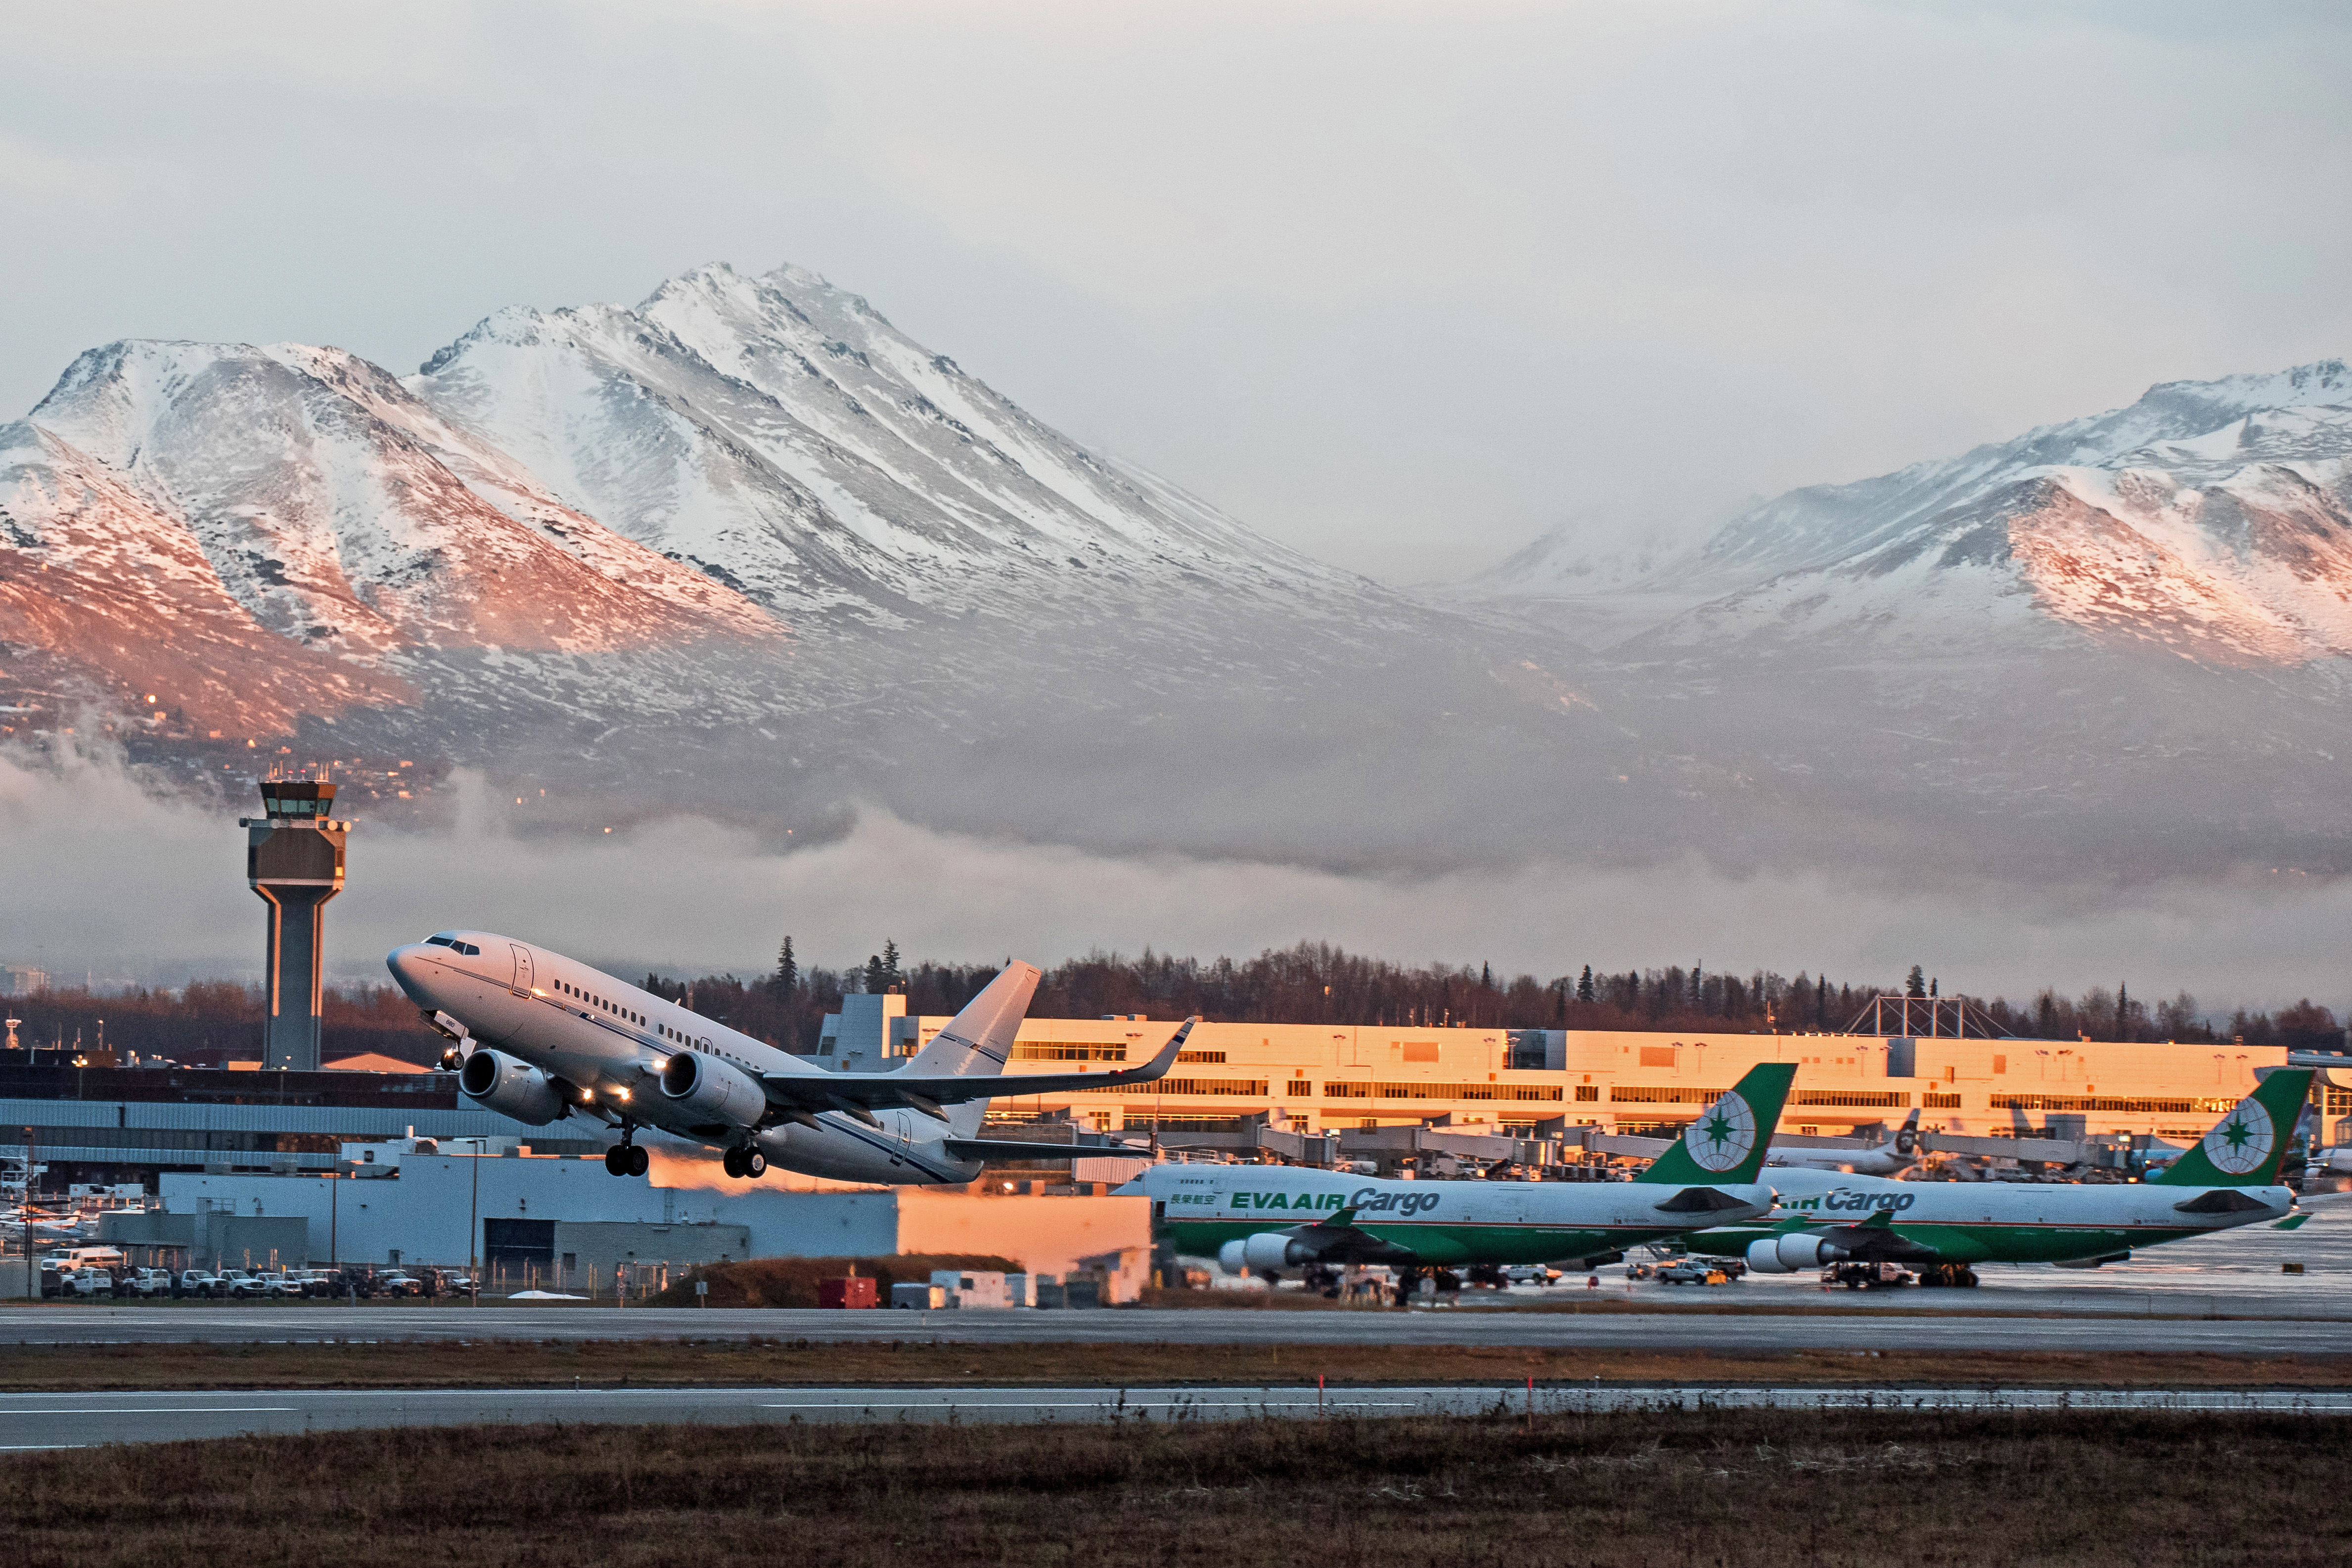 Aircrafts depart from Ted Stevens Anchorage International Airport at sunset, Anchorage, Alaska